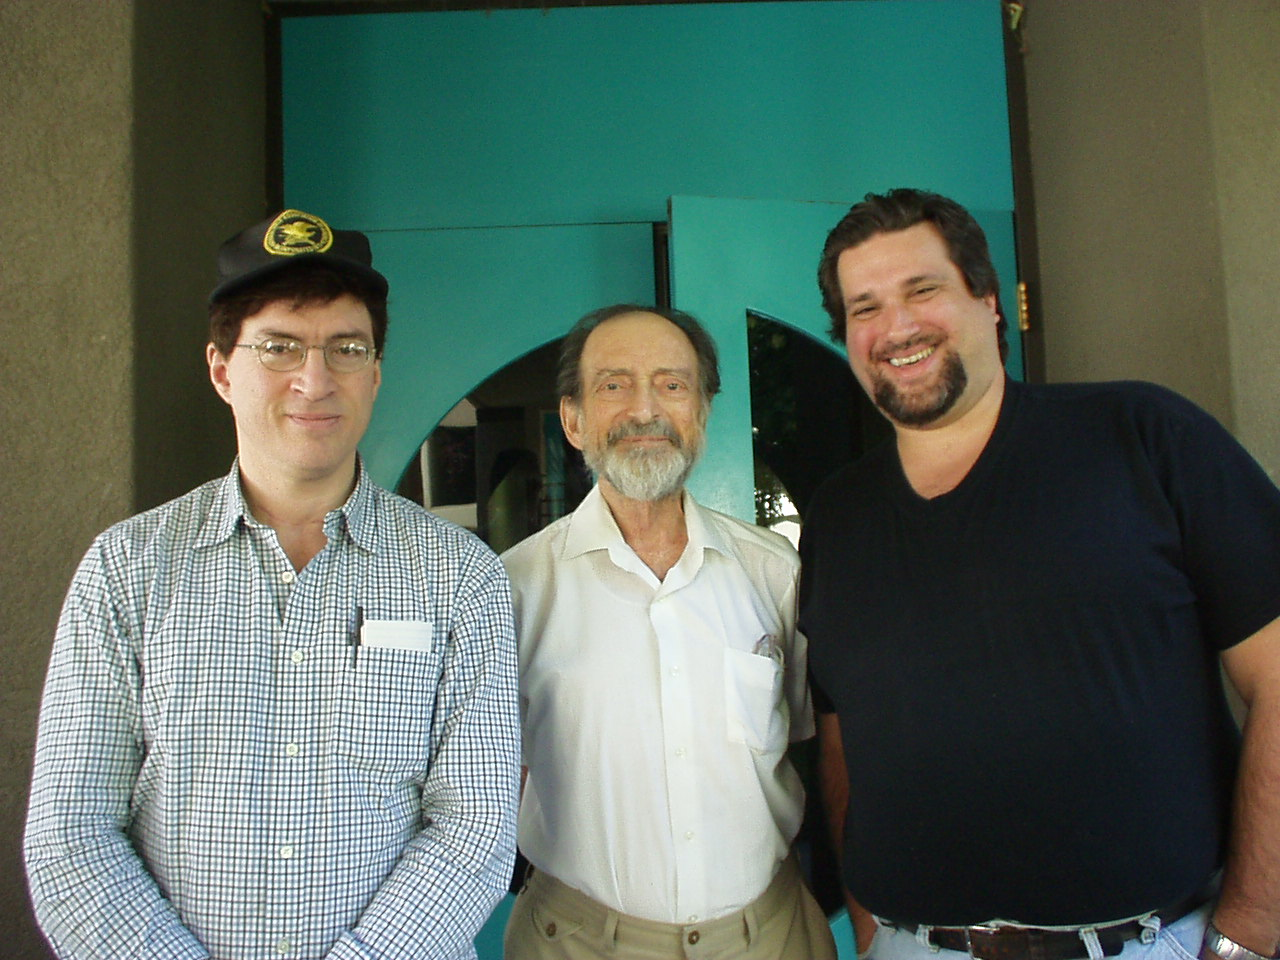 Marty Lewinter, Frank Harary and William Widulski